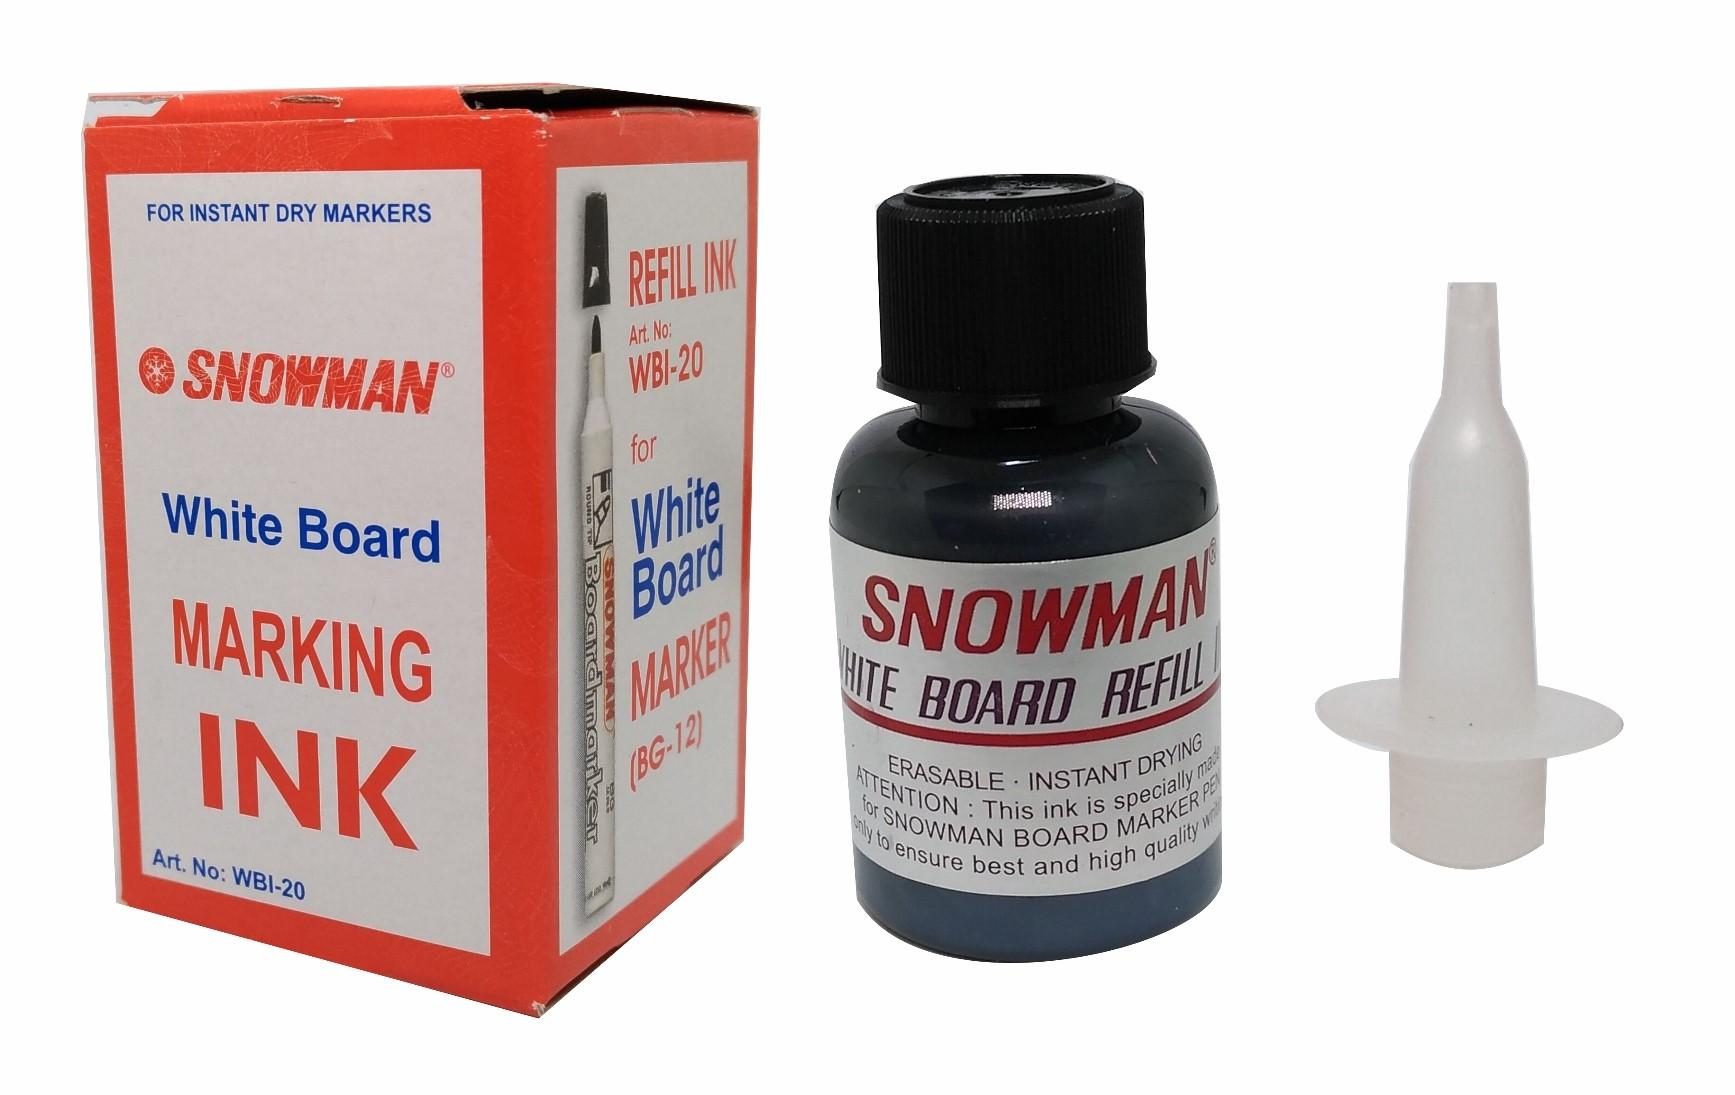 Snowman Refill Ink For White Board Marker - Hitam [1 Pack/12 Pcs]